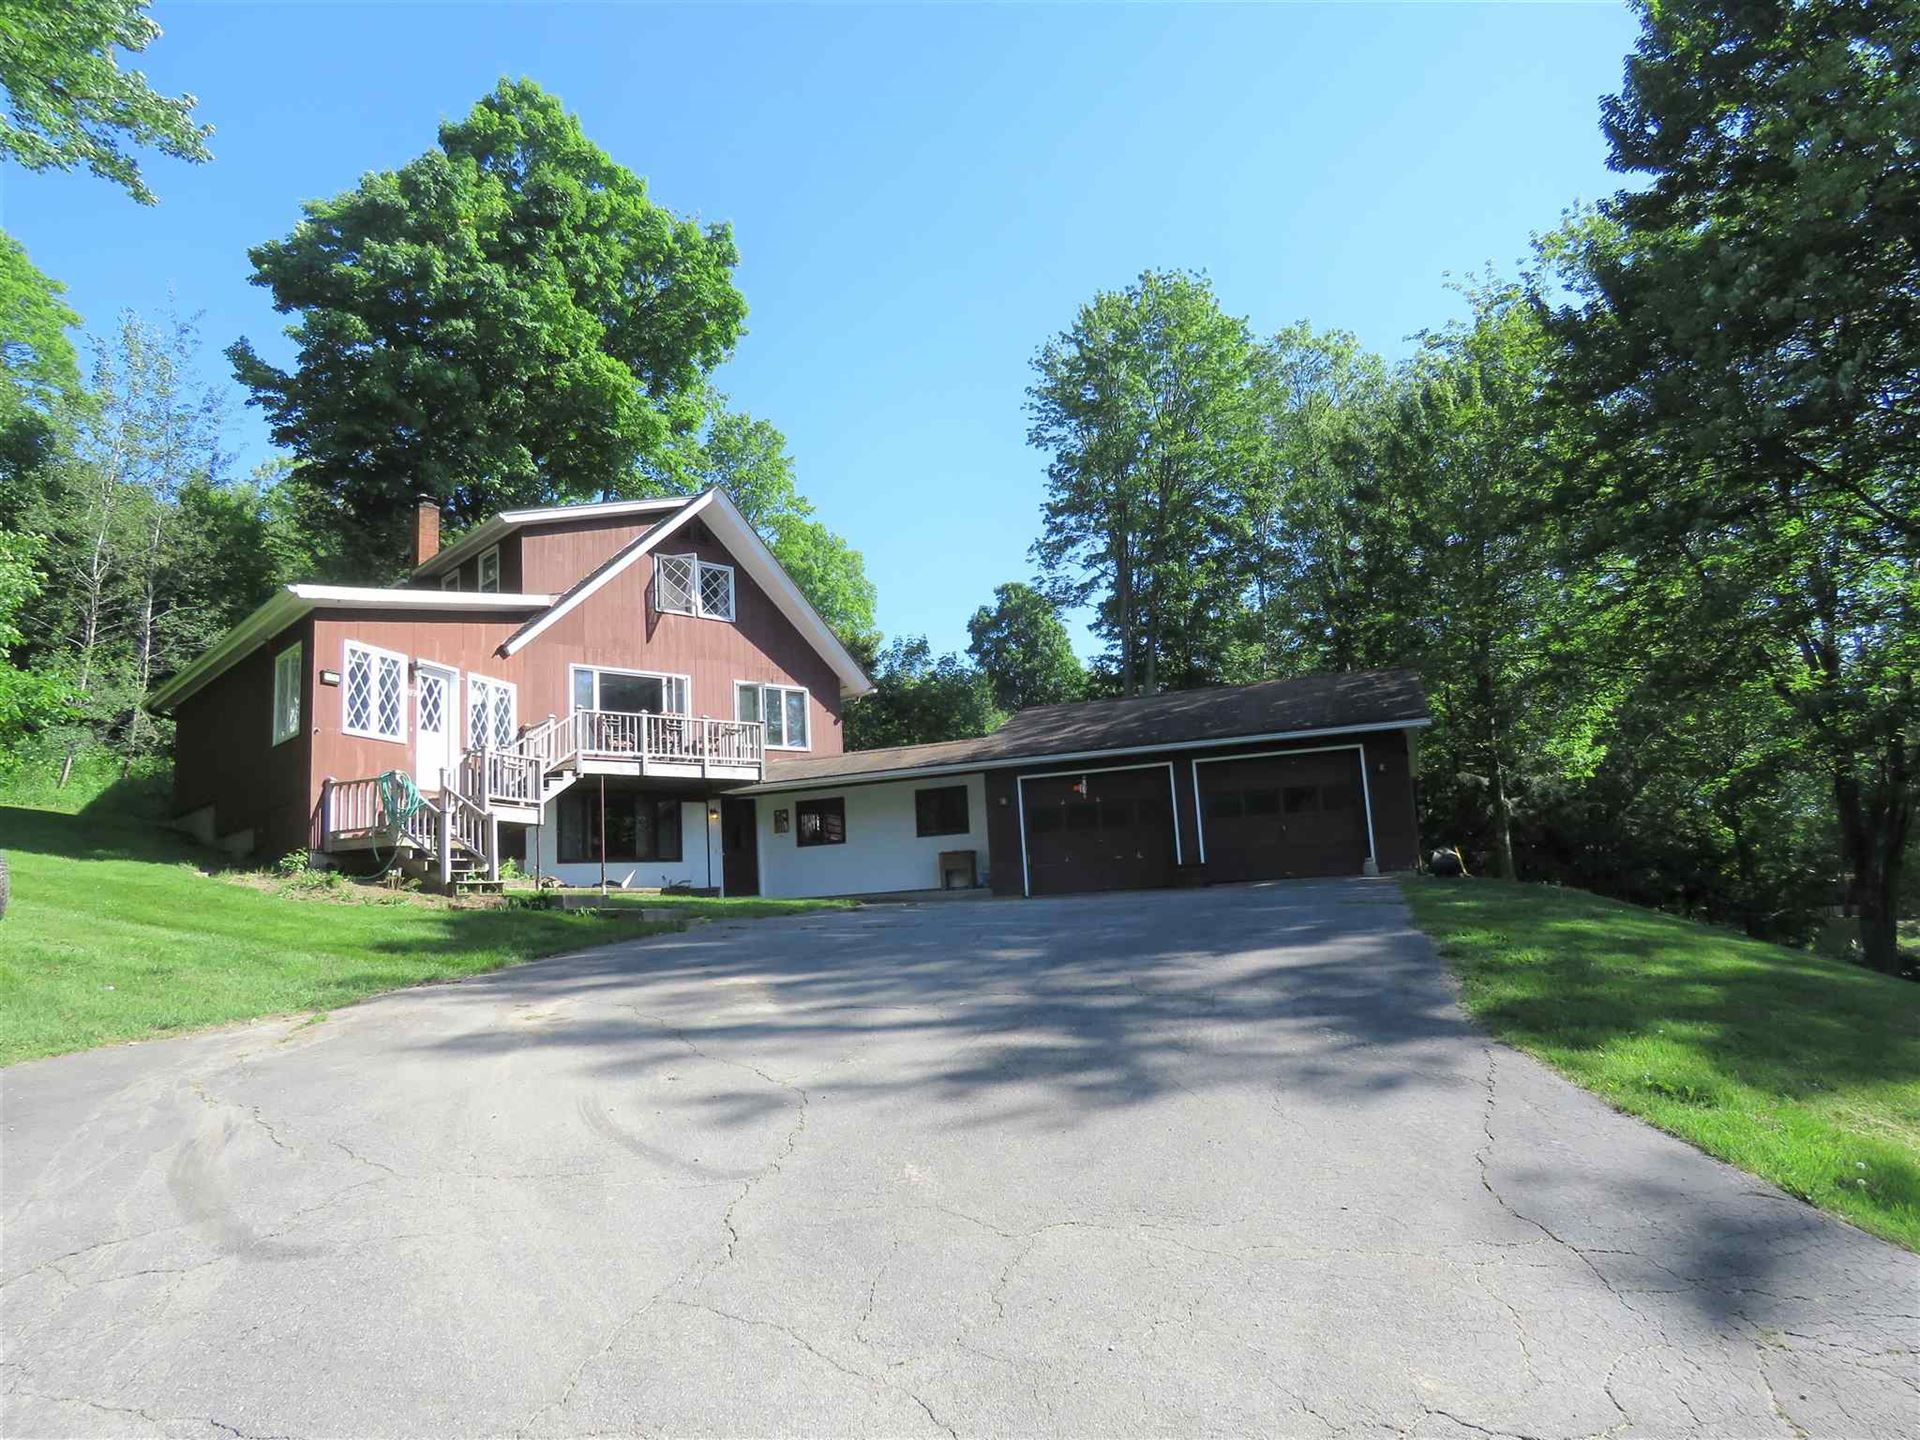 279 Missionary Acres, Derby, VT 05829 - MLS#: 4811260